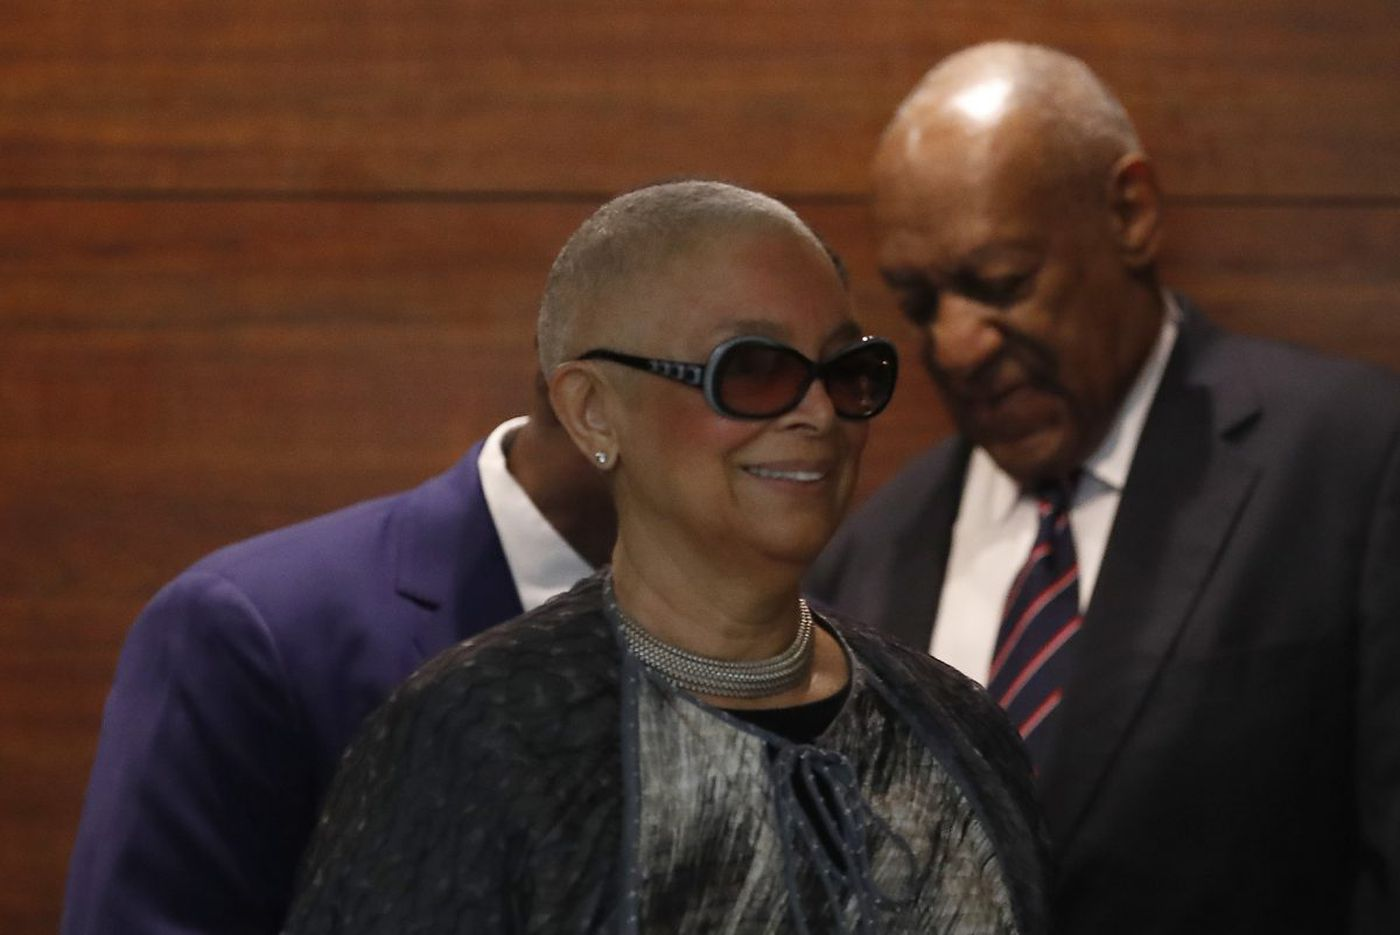 Bill Cosby's wife is not at his trial. But Camille Cosby's presence looms